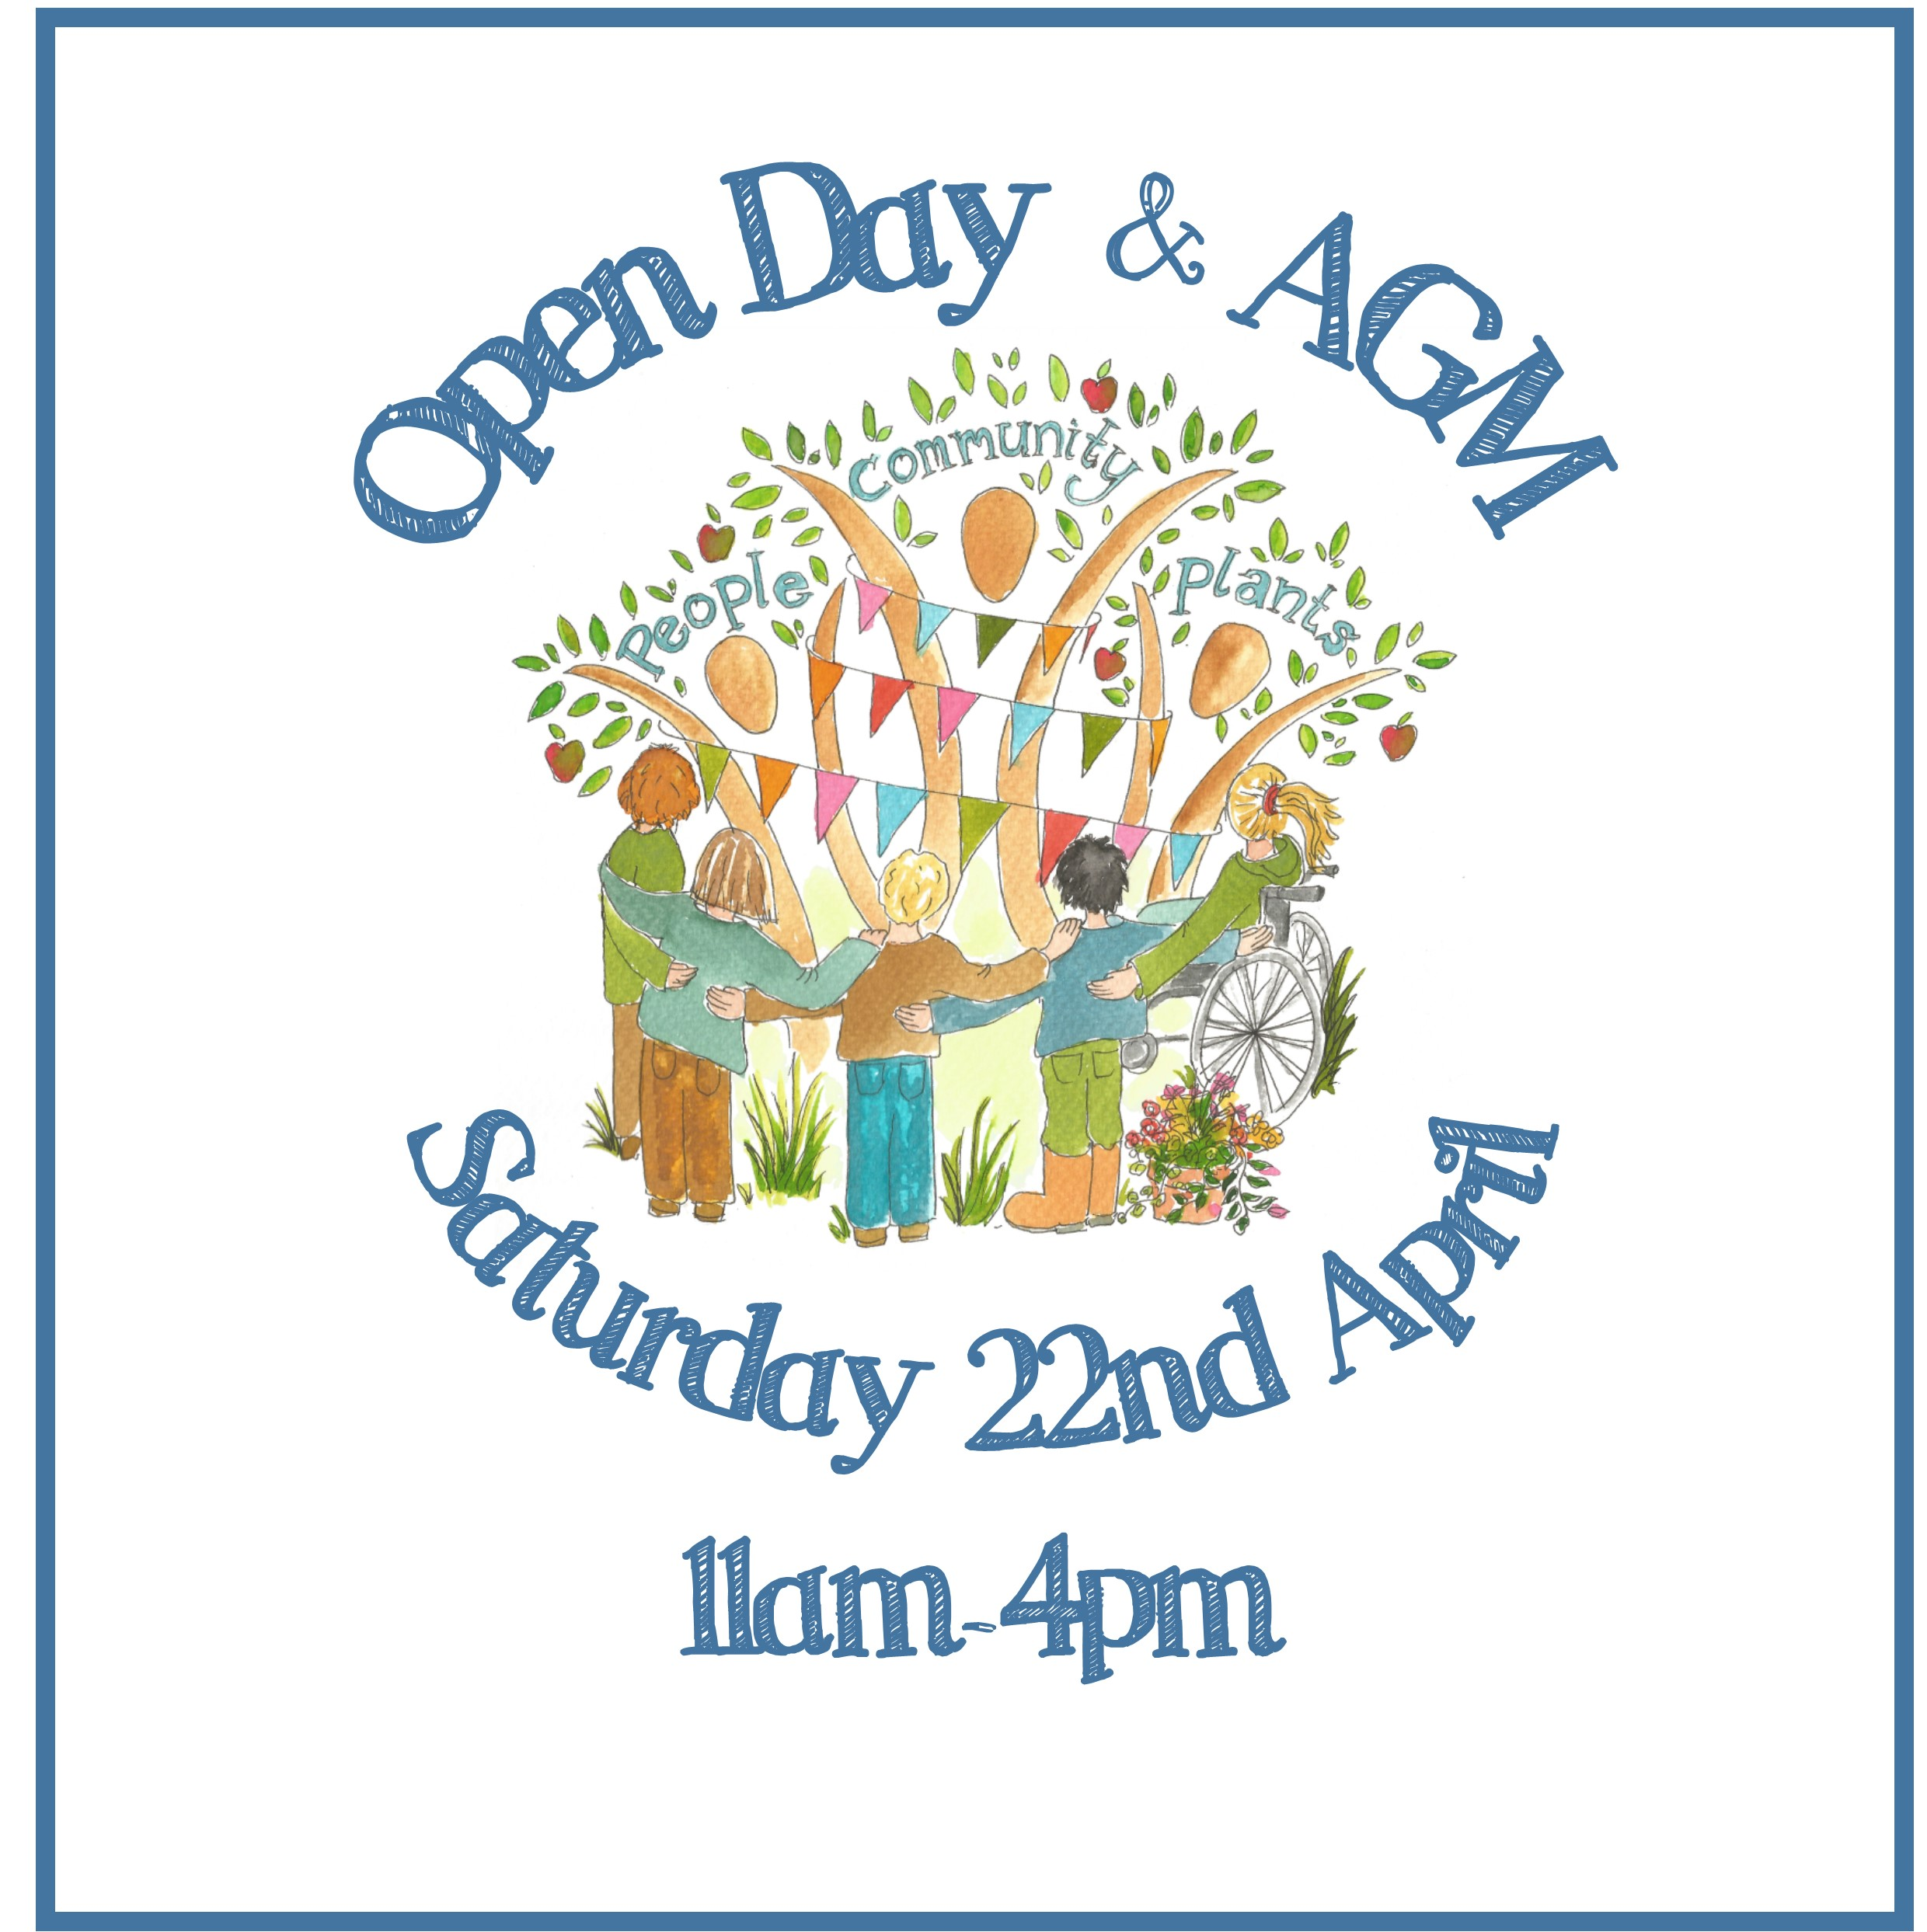 COMMUNITY: OPEN DAY AND AGM